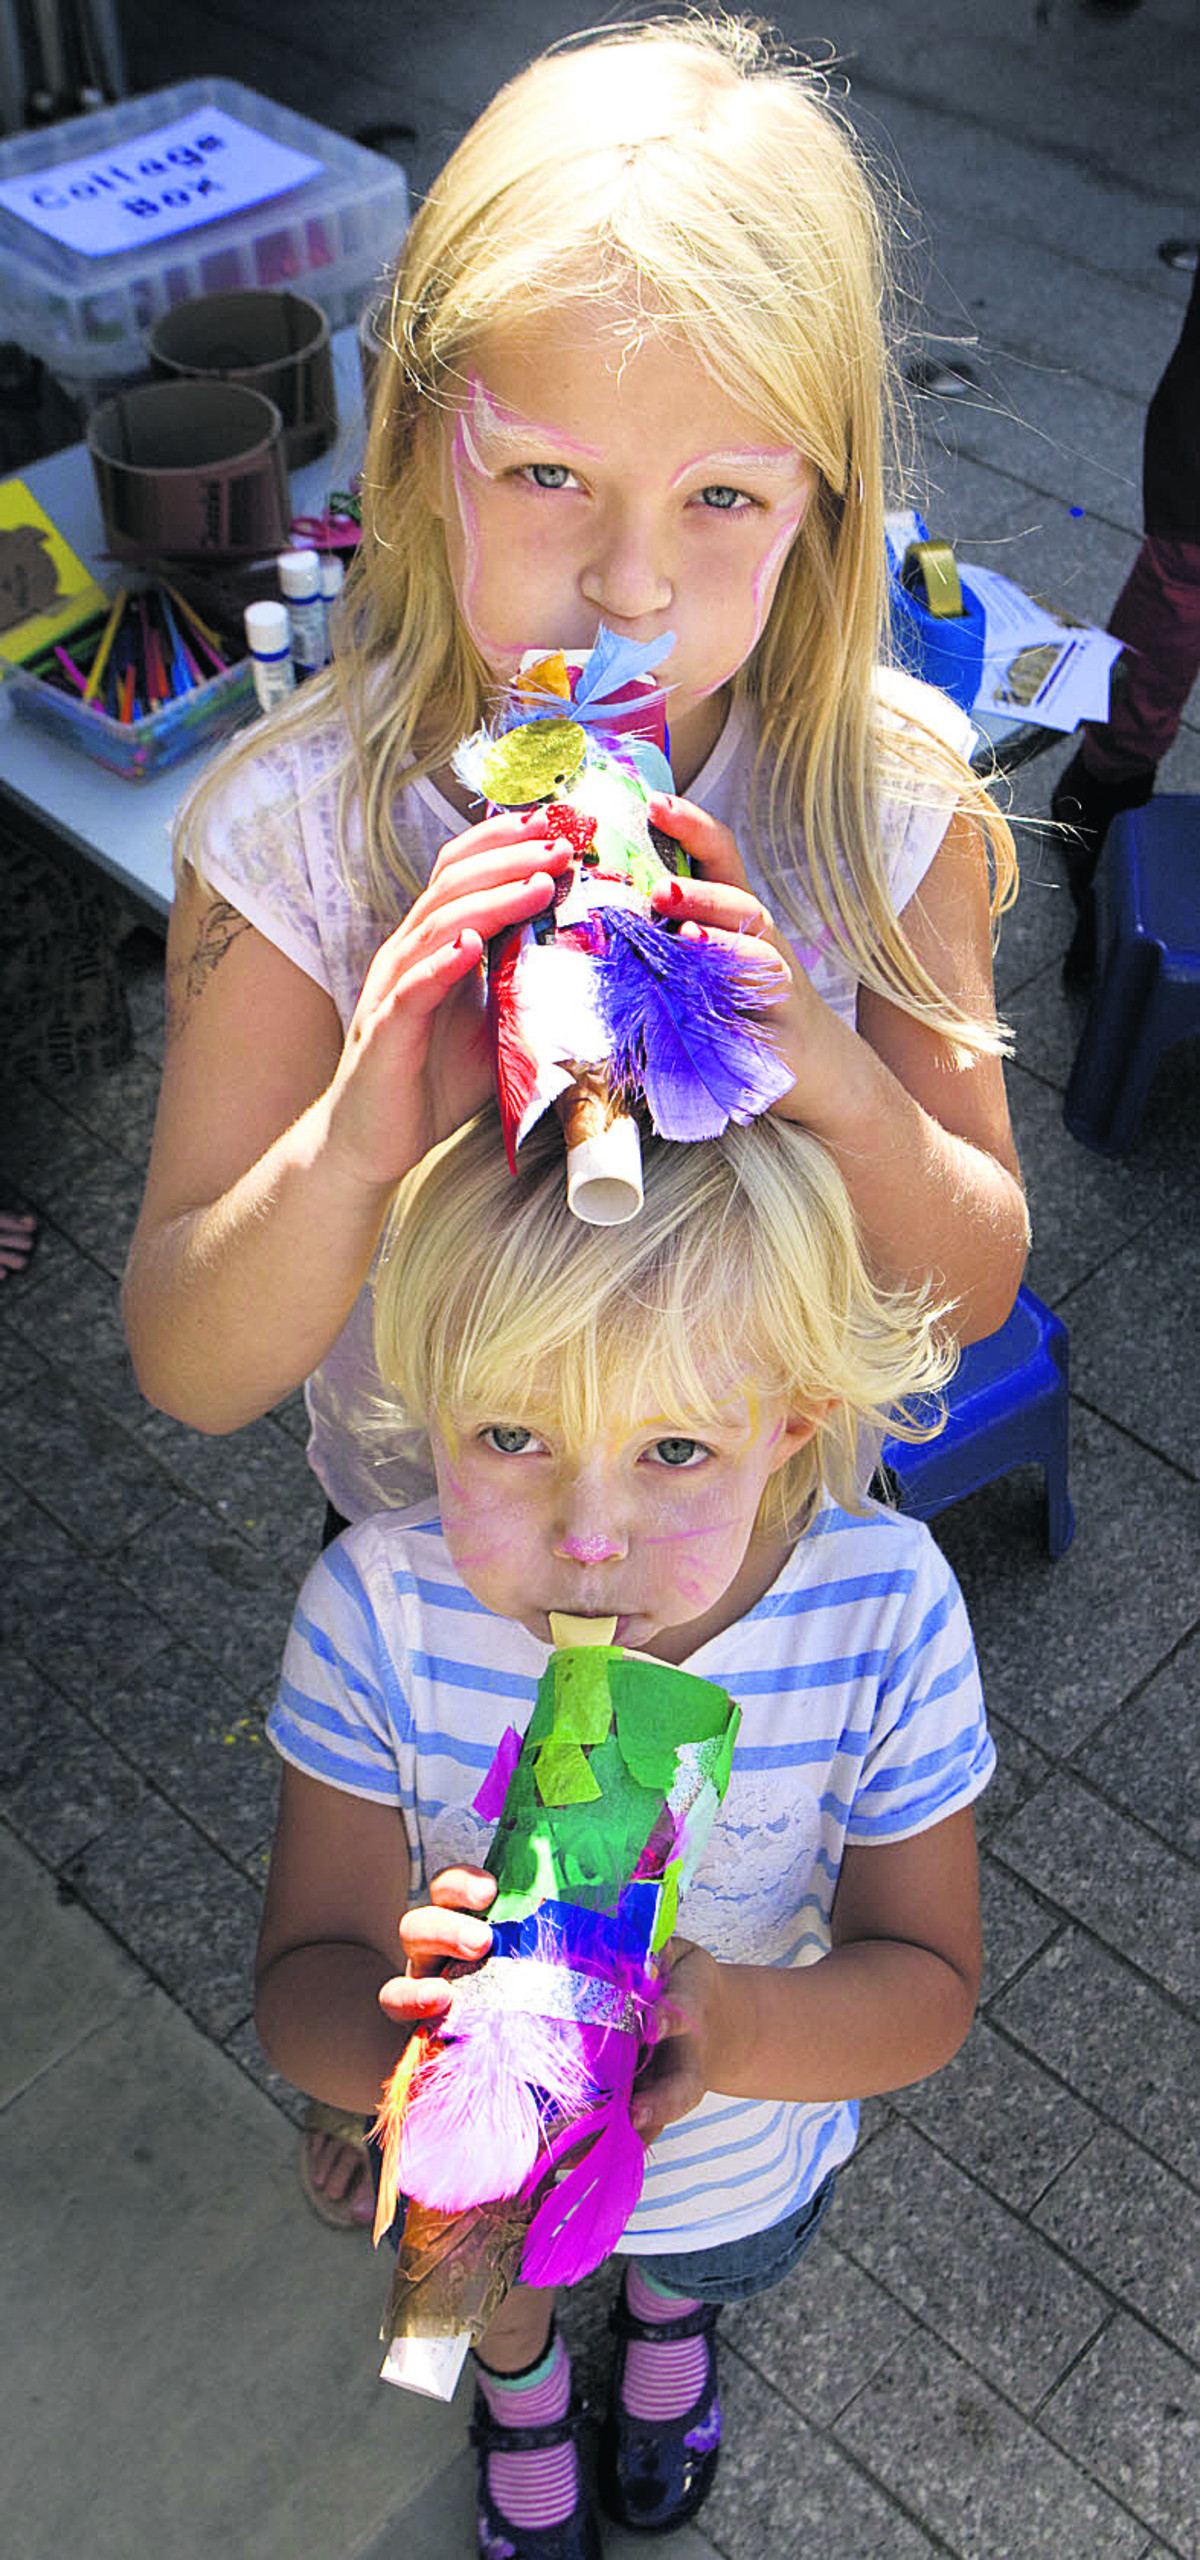 Evie Bath, eight, and Maisie Knight, four, with horns they made for the Junk Orchestra